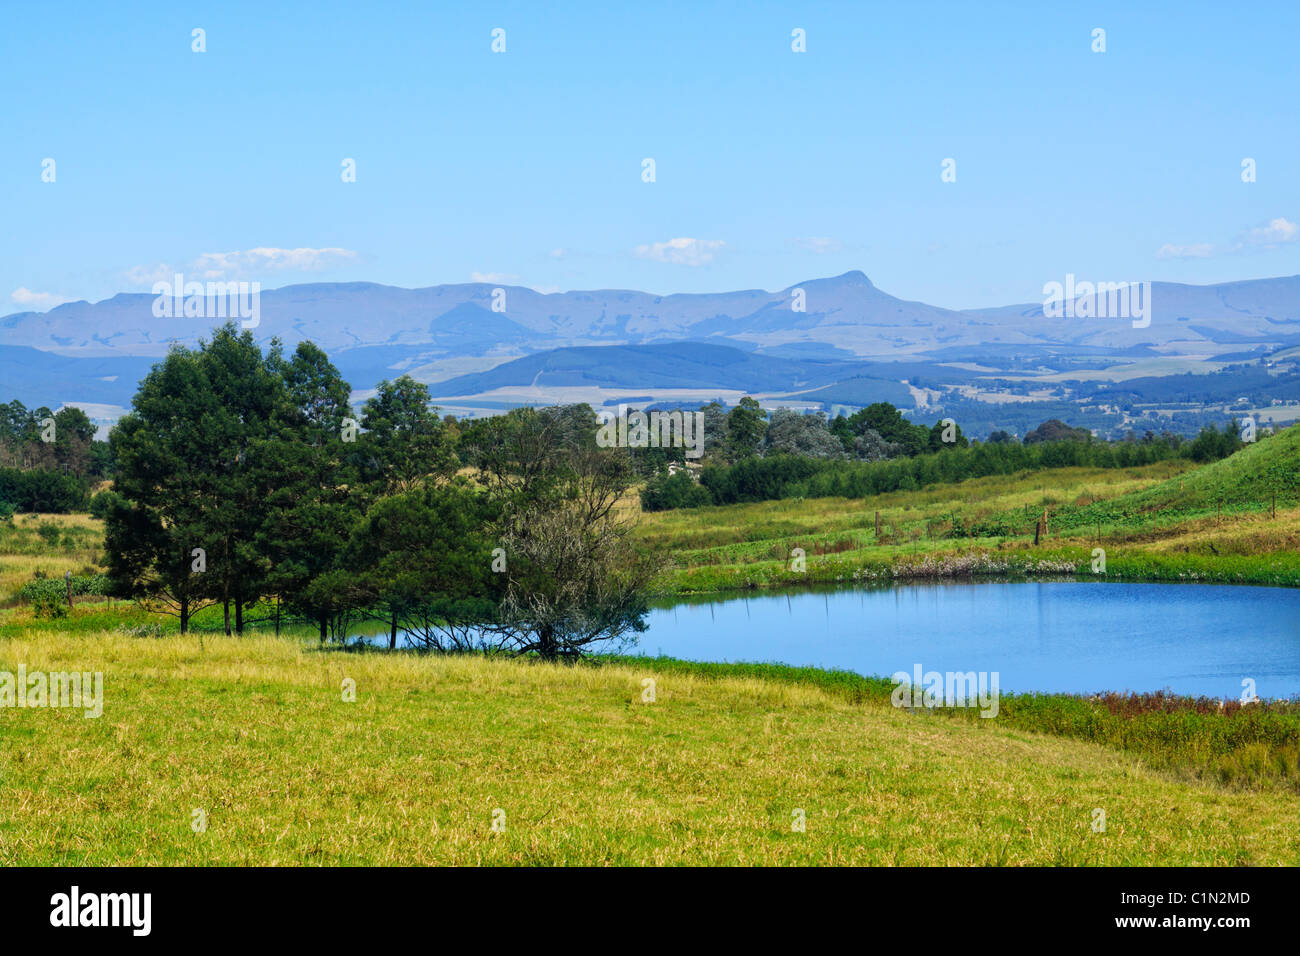 Landscape in the Midlands, KwaZulu Natal, South Africa. Stock Photo